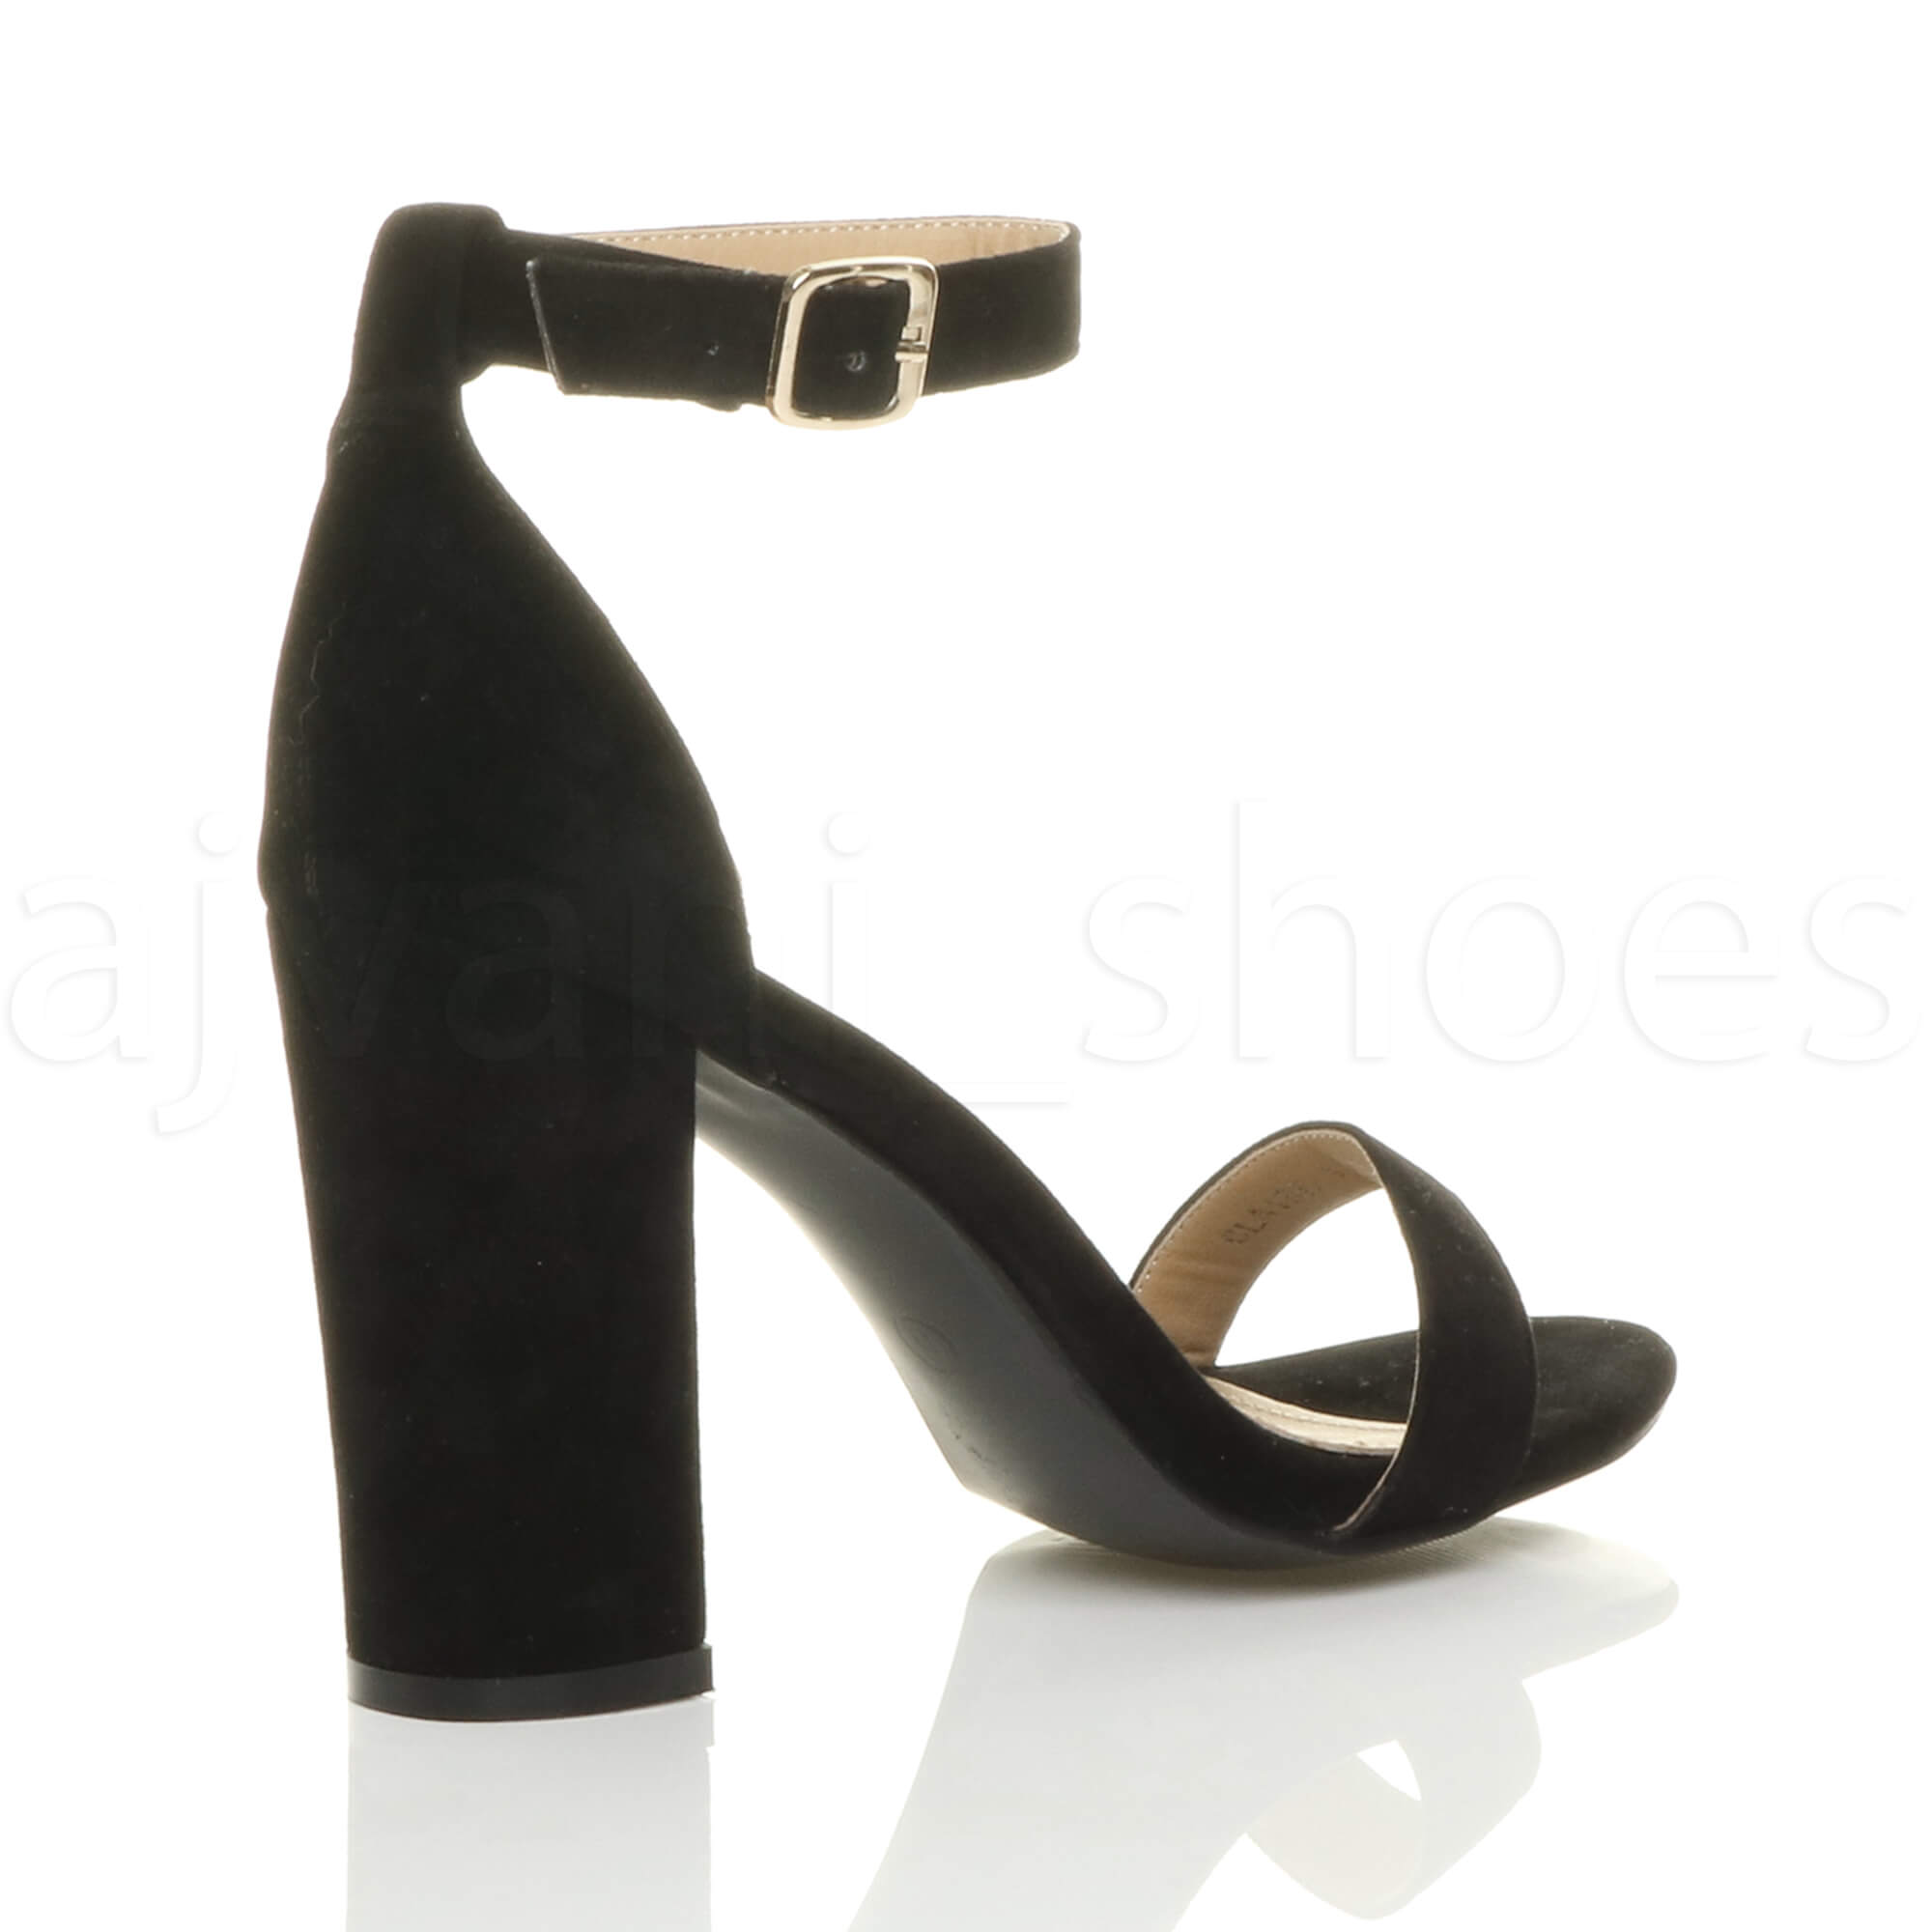 WOMENS-LADIES-BLOCK-HIGH-HEEL-ANKLE-STRAP-PEEP-TOE-STRAPPY-SANDALS-SHOES-SIZE thumbnail 40